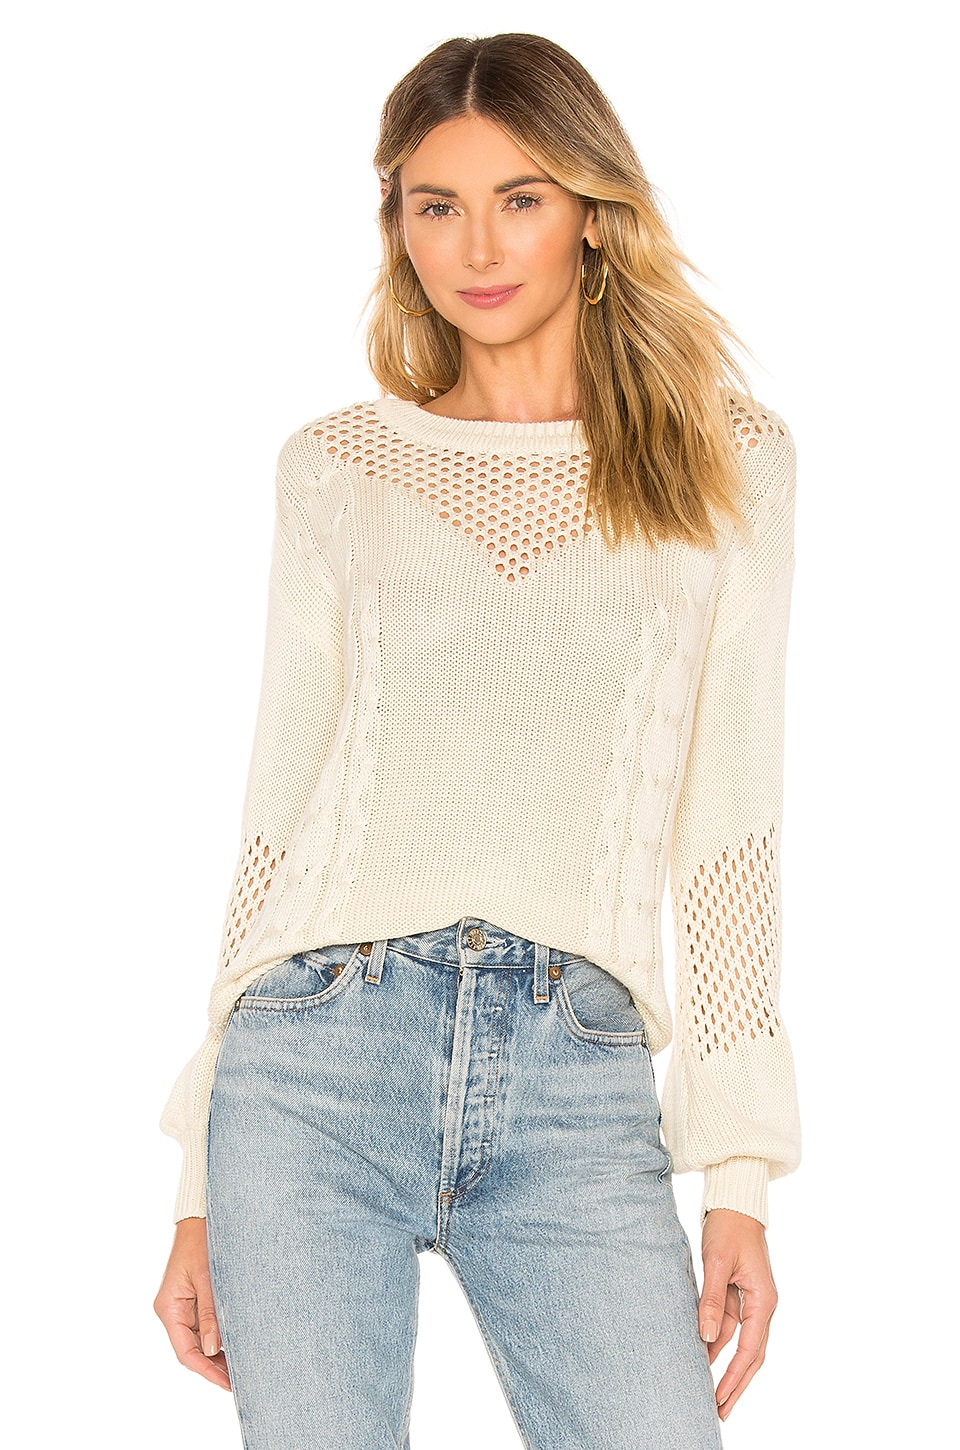 Lovers + Friends Grove Sweater in Sand